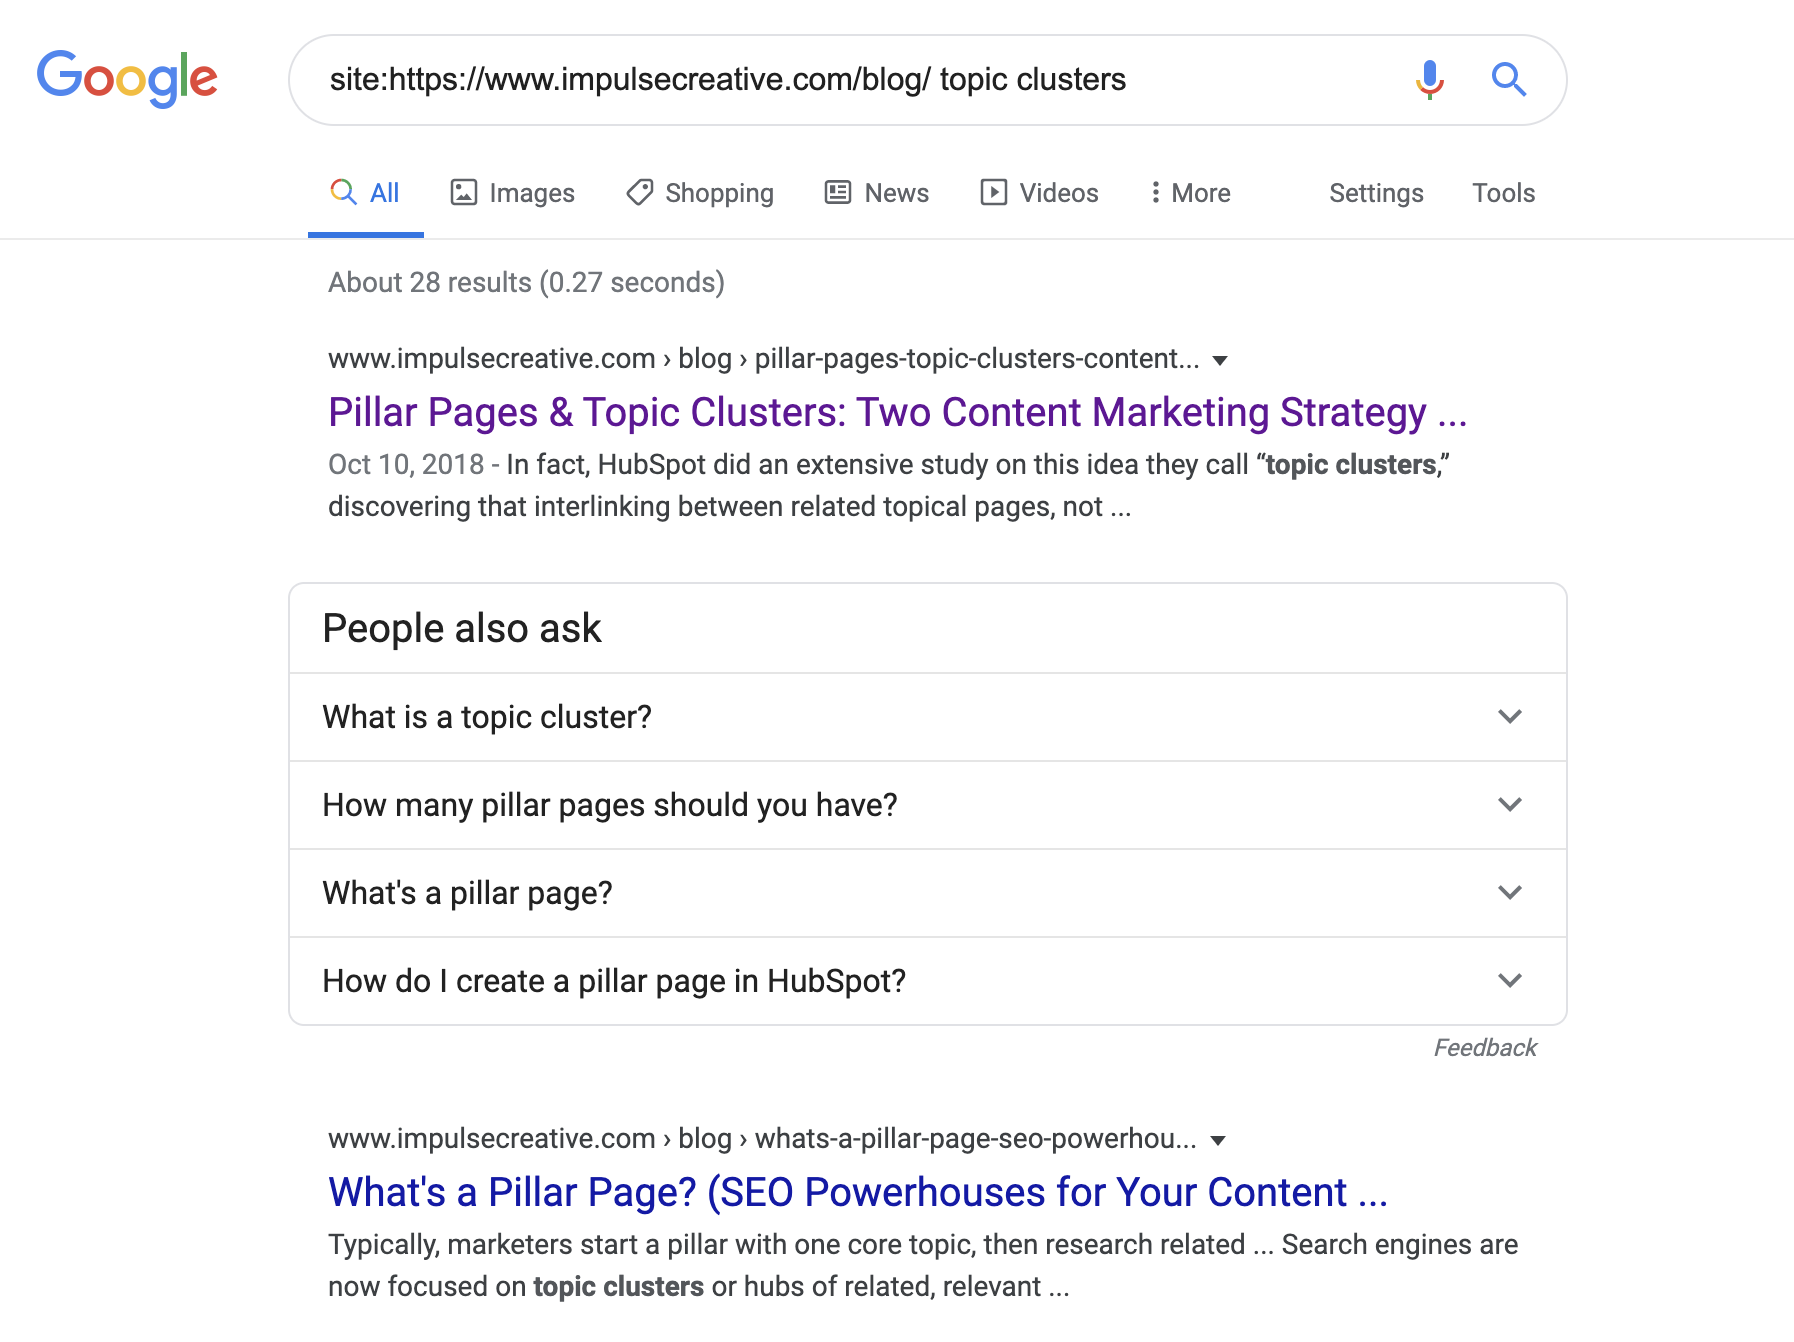 site-search-impulse-creative-blog-topic-clusters-keyword